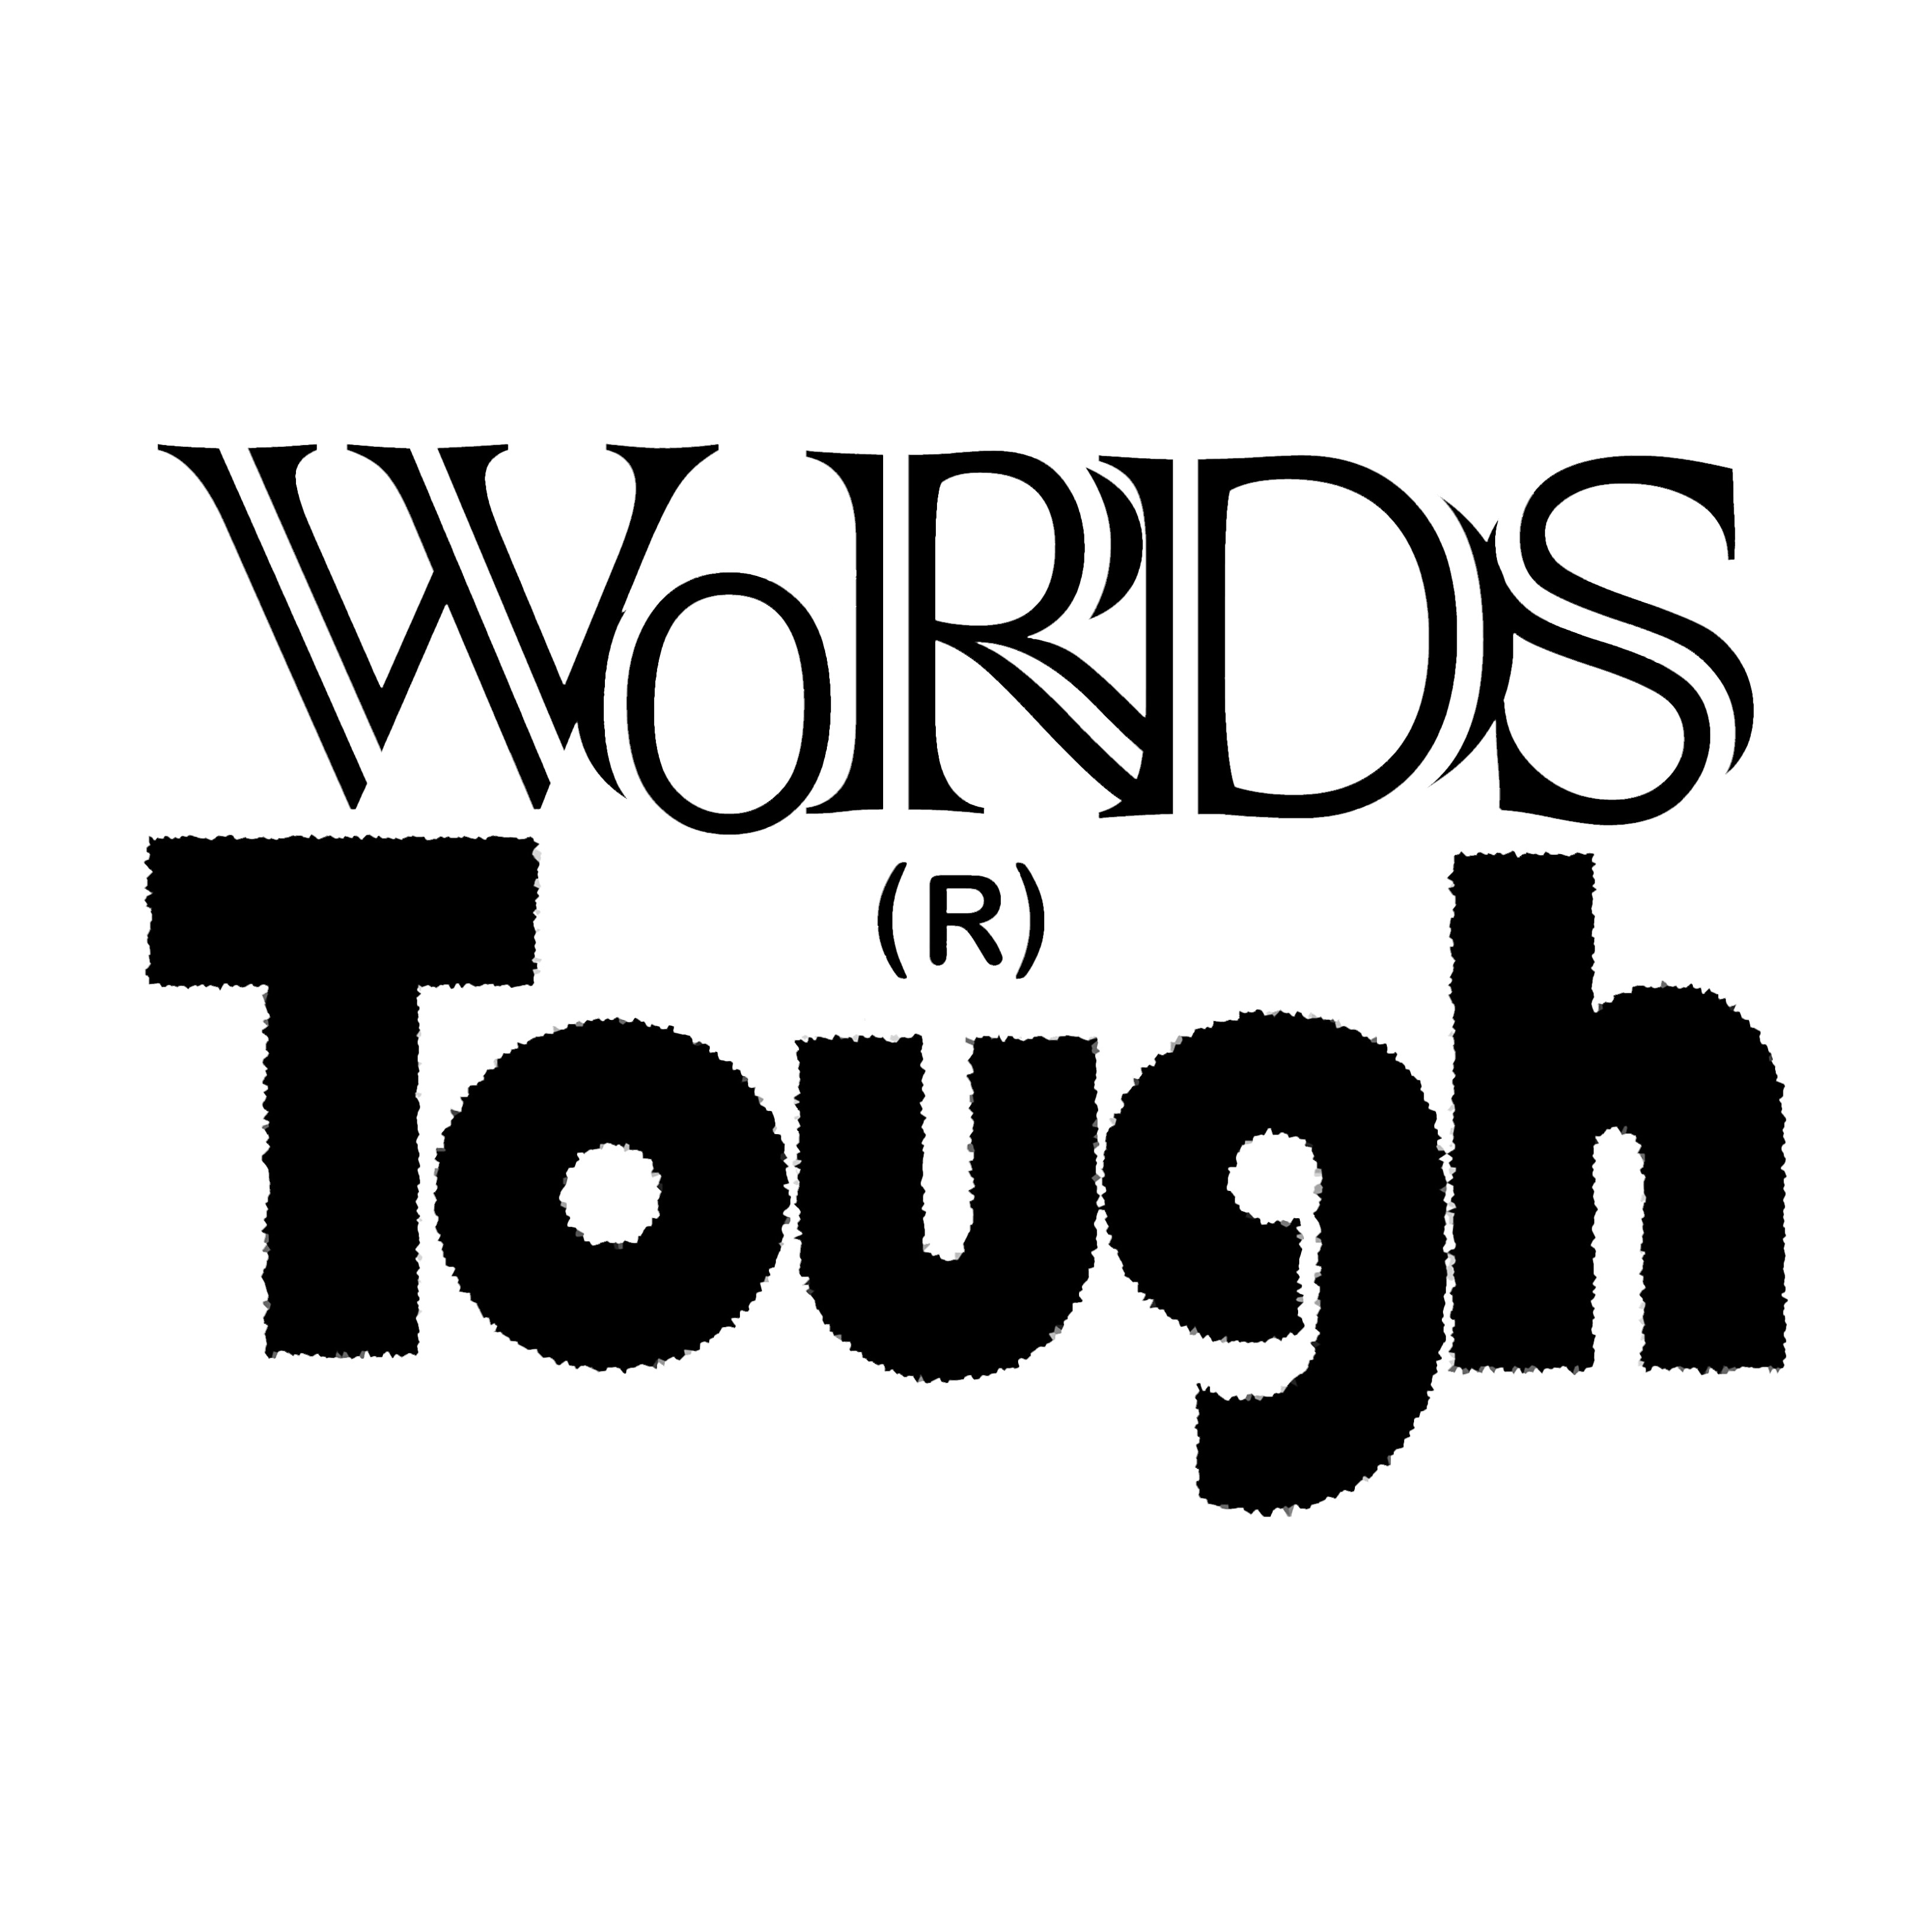 Words r Tough - Ep: 1 - Happy Accidents show art